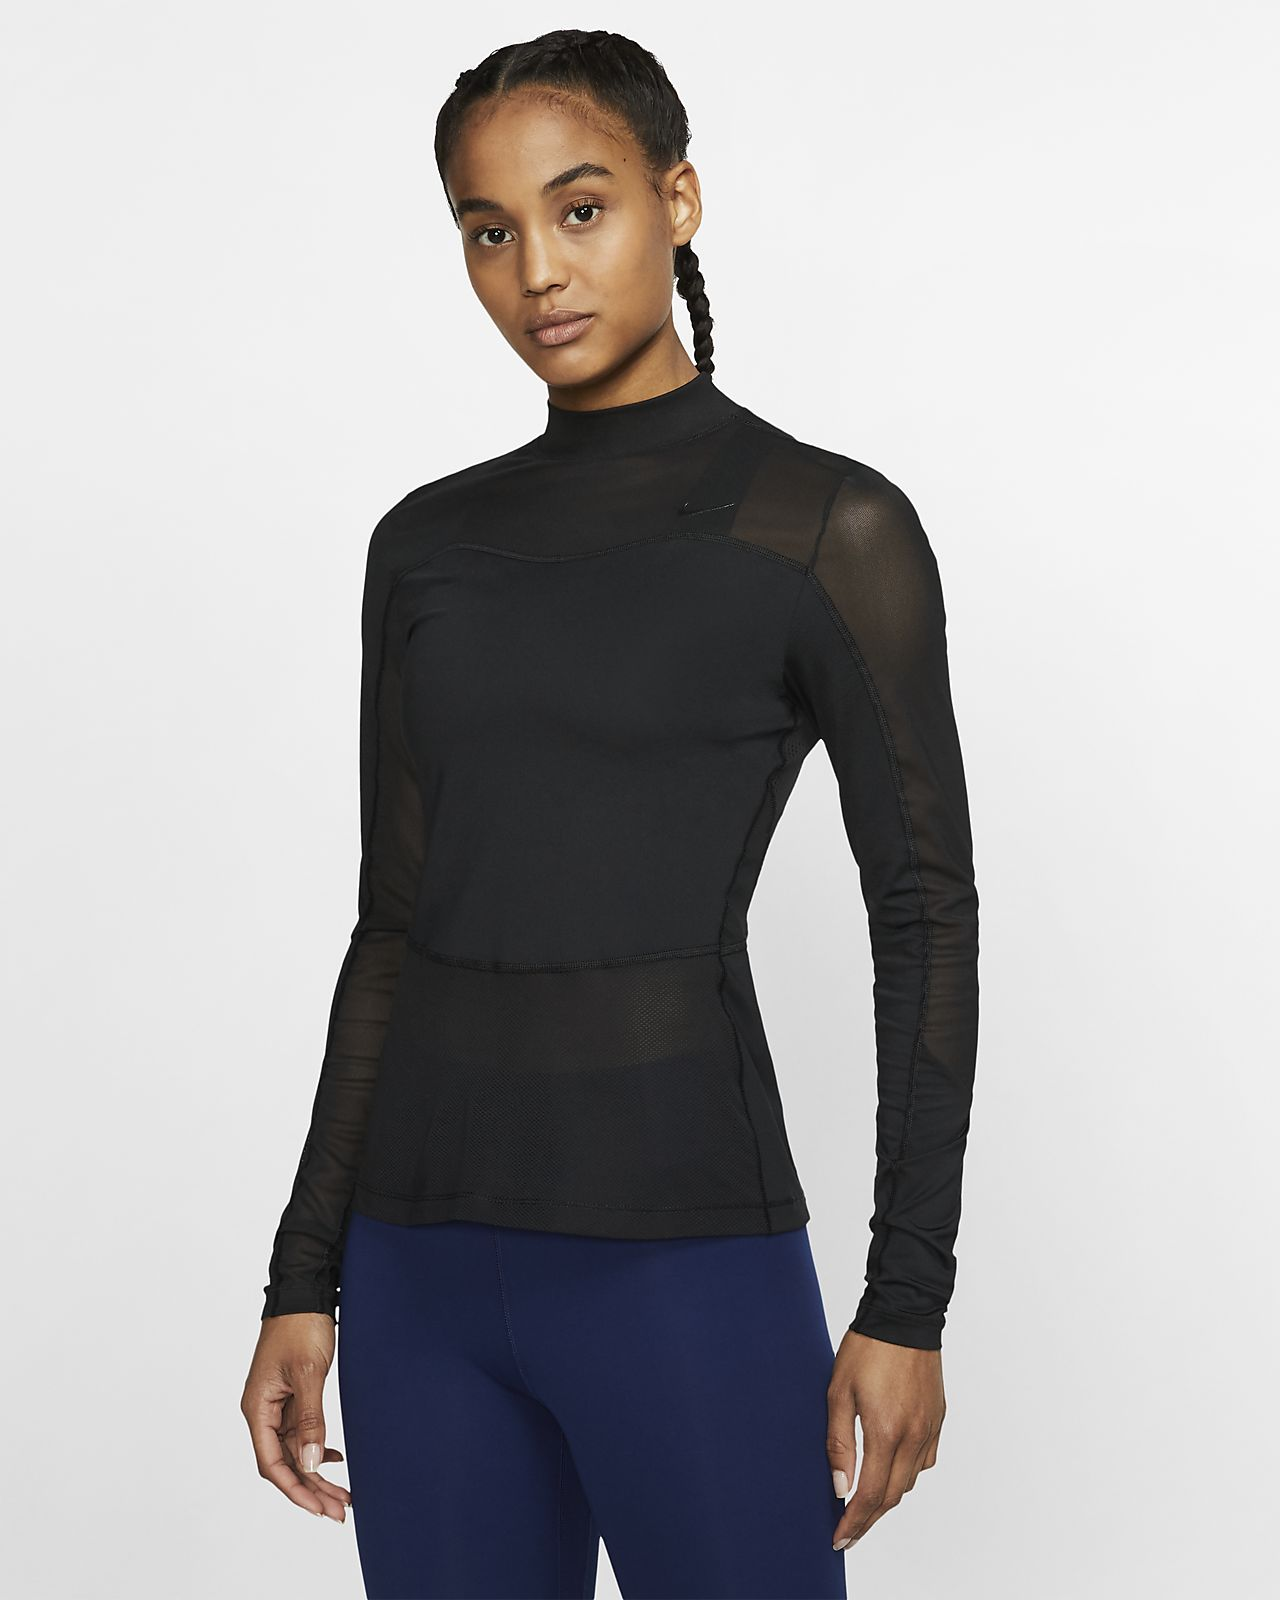 Nike Pro HyperCool Women's Long-Sleeve Top